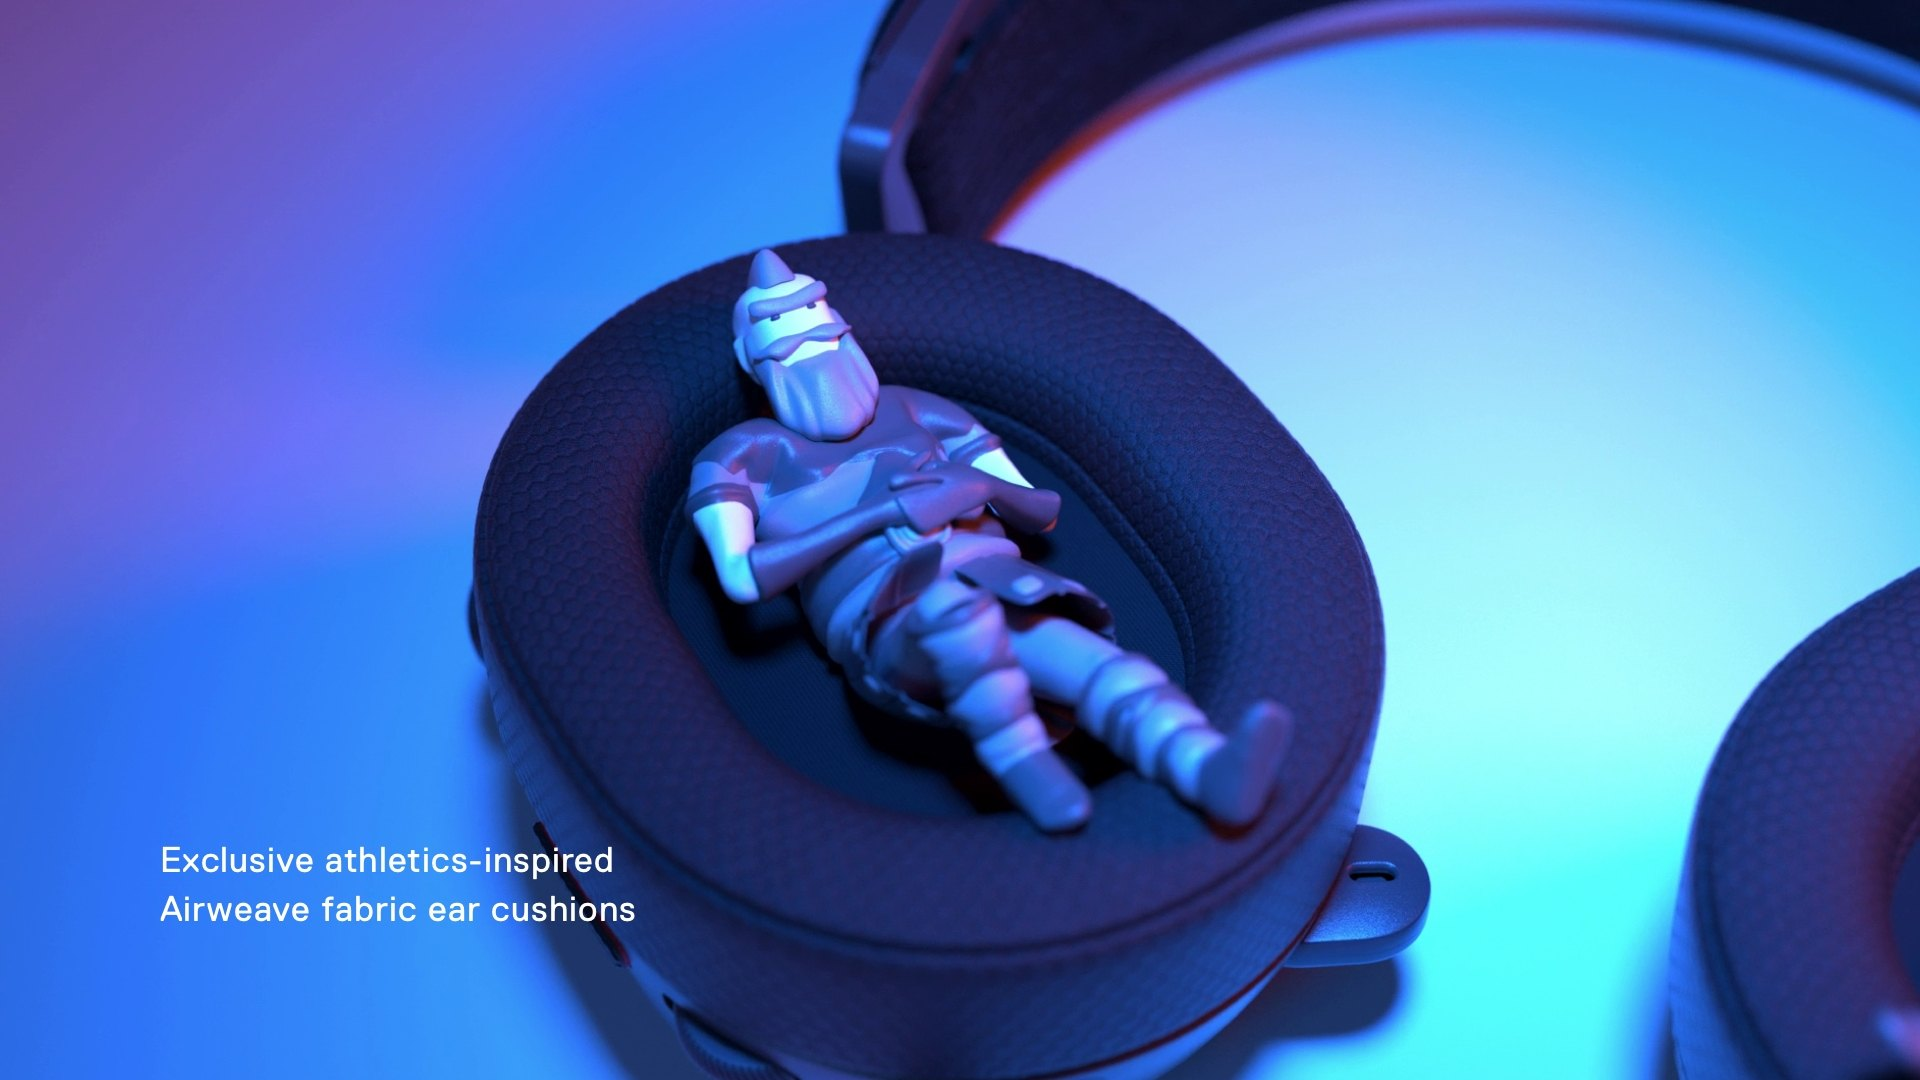 A small icon figure laying comfortably in the Arctis Ear Cup